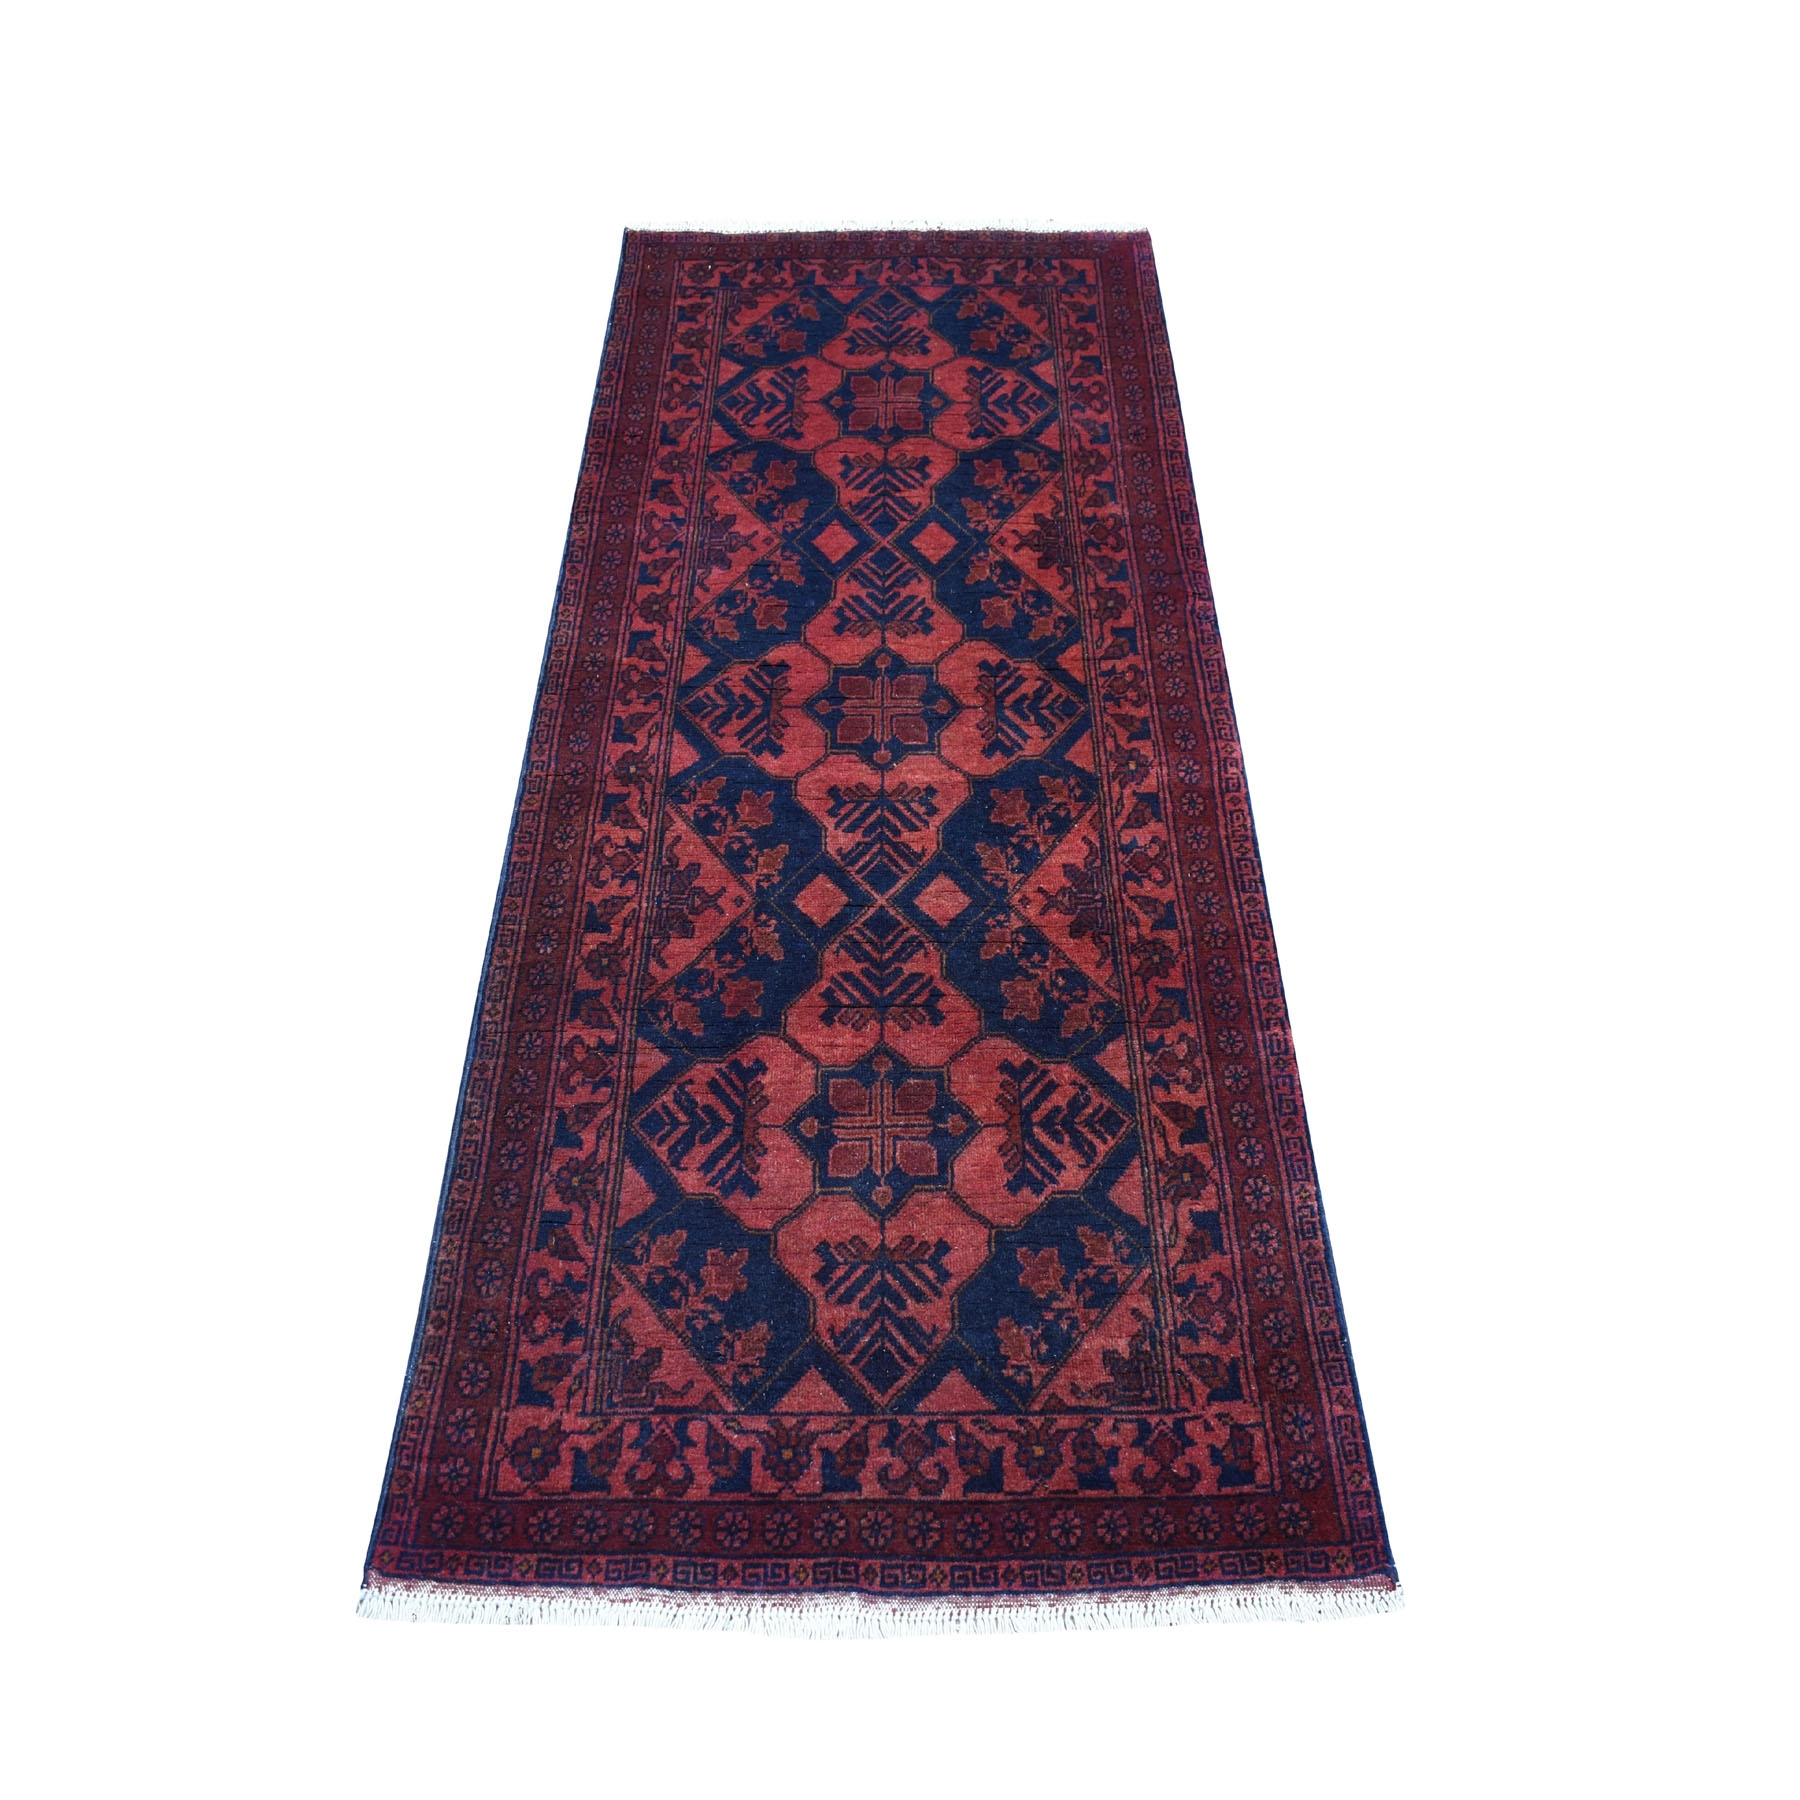 "2'7""x6'4"" Deep and Saturated Red Tribal Afghan Andkhoy Runner Pure Wool Hand Knotted Oriental Rug"